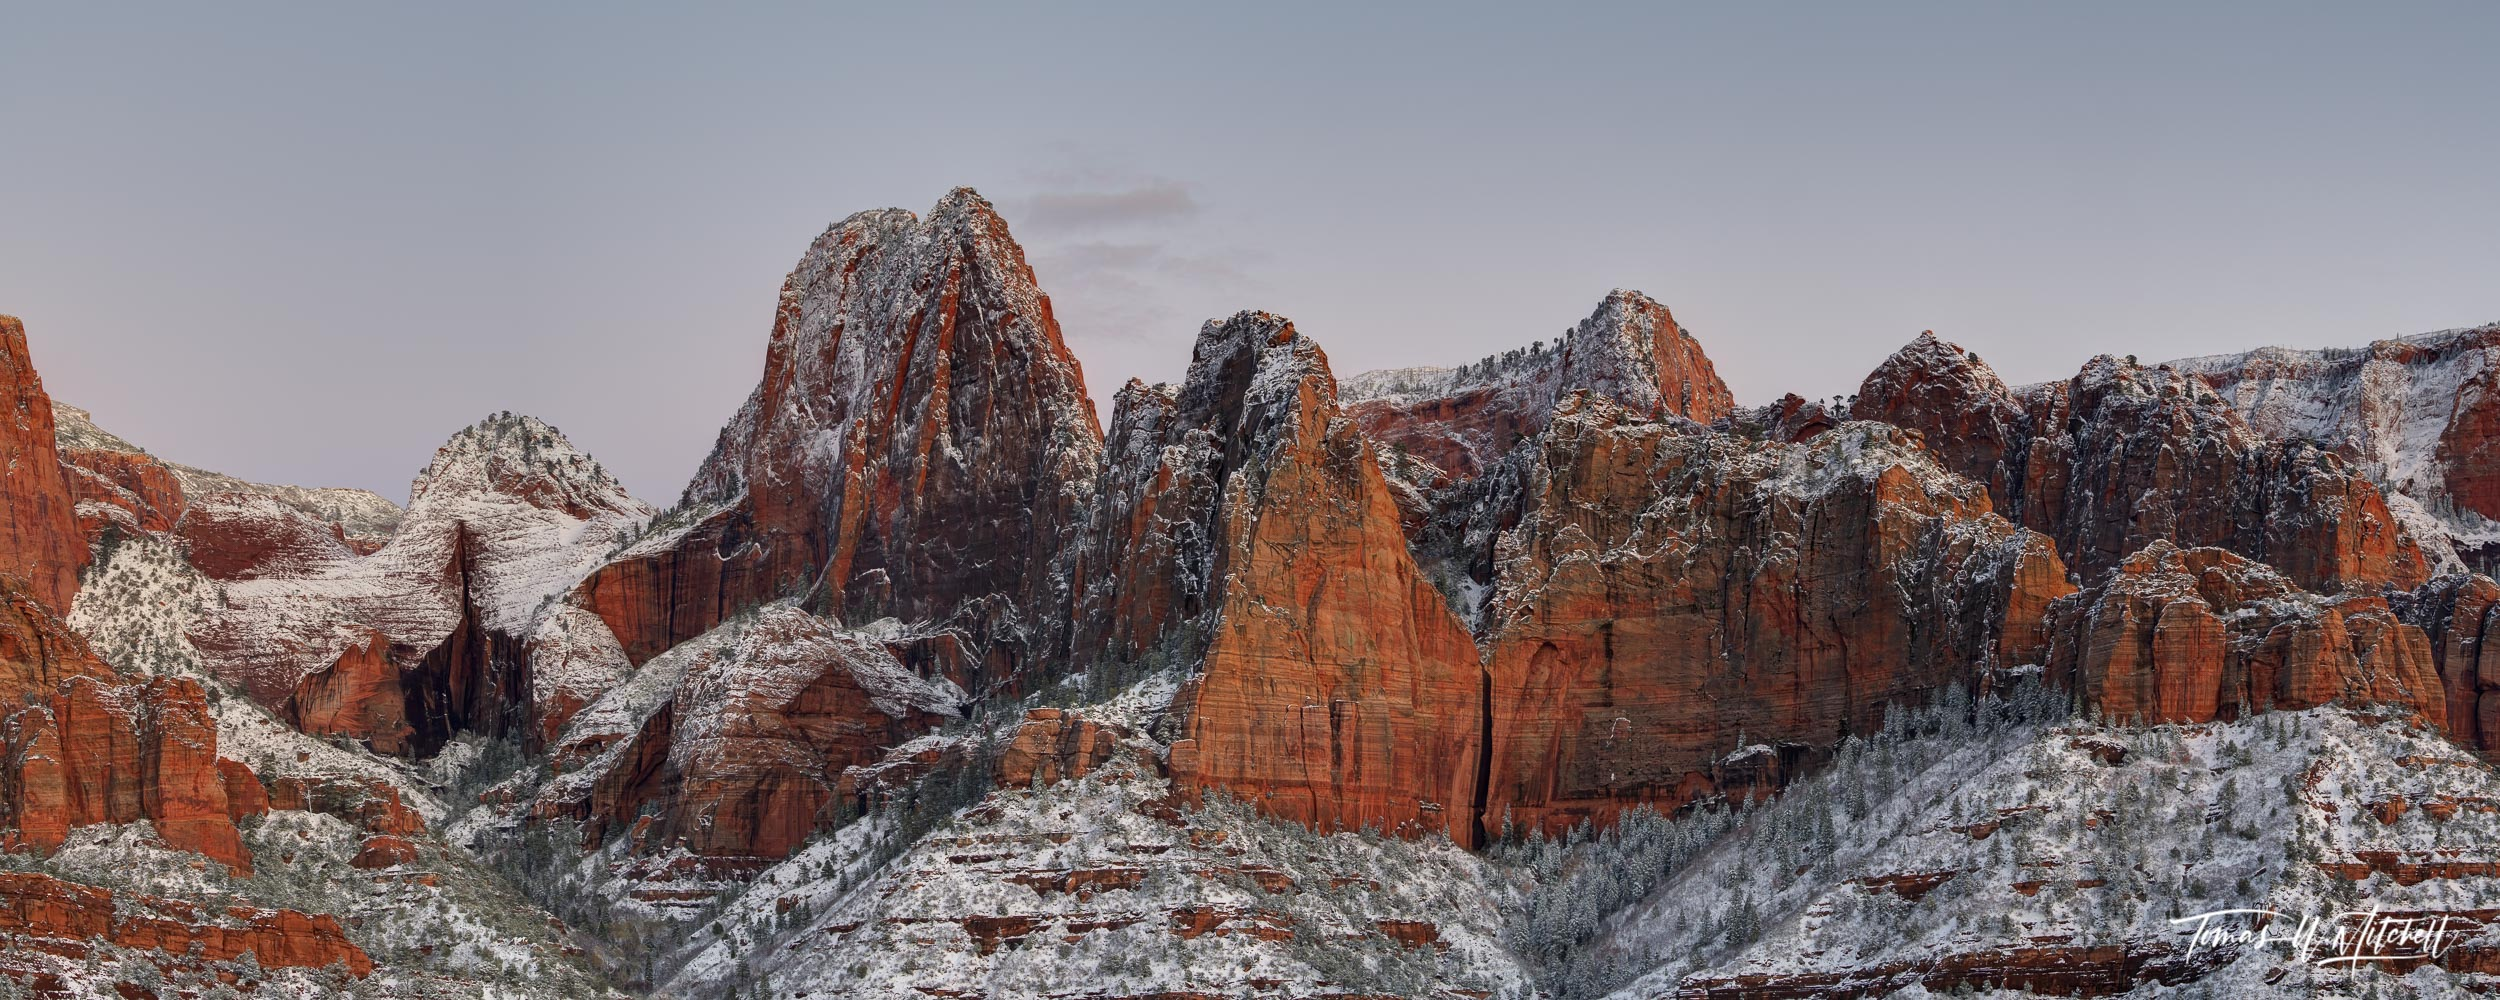 kolob canyons, zion national park, utah, panoramic, clouds, limited edition, fine art prints, photo